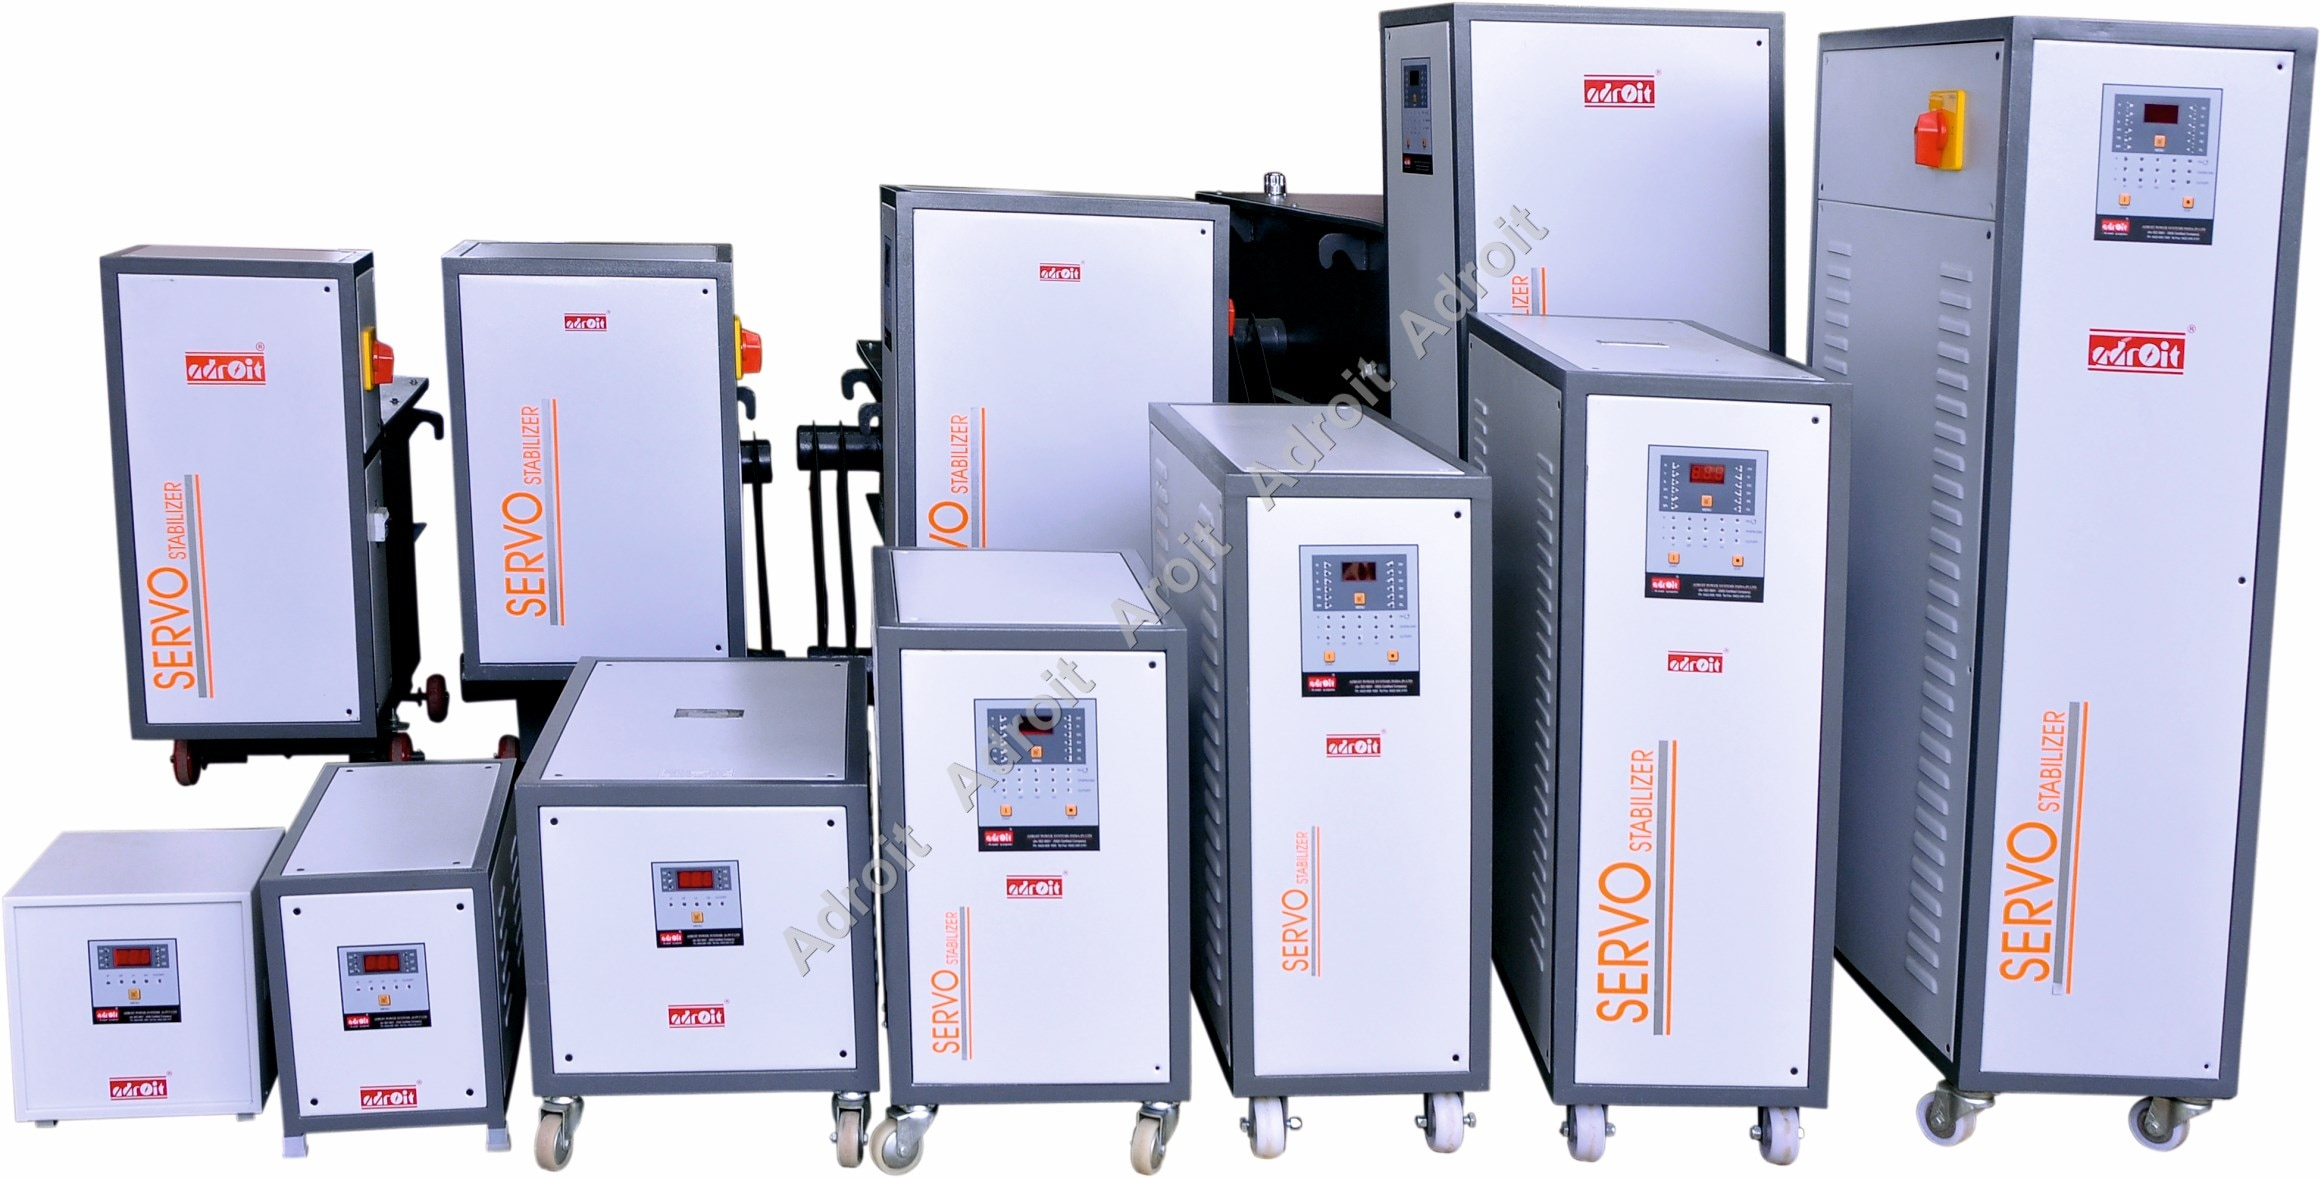 "Servo Stabilizer Manufacturer In Coimbatore  We are of the leading manufacturers and supplier of oil cooled voltage stabilizers (micro processor based) that helps in preventing data loss caused by outrages & brown outs. This comes with computer grade line conditioning with isolation technique and the output is fully isolated by double conversion & isolation transformer. Moreover, we also offer our oil cooled servo stabilizers with remote monitoring & control through SNPB and Internet. We are a leading manufacturer and supplier of Servo Stabilizers from Coimbatore, Karnataka, Andra pradesh , kerala and South India    Parameter	Three Phase Capacity	3 KVA to 1000 KVA Operating Frequency	47 - 53Hz Input Voltage Range	Range I :340 - 465V Range II :295 - 465V Range III :240 -465V Output Voltage	400 V 1% (Adjustable) Output Volts Regulation	1% Type of Cooling	Oil Cooled Working Temperature	0 to 50° C Insulation	Class ""B"" Output Wave	Form True Reproduction of Input Wave Form Distortion	Nil Efficiency	98% at Nominal Load Correction Rate	25/35/60 V per second Relative Humidity	60% Effect of Load Power Factor	Nil Environment	Indoor & out door Servo Stabilizer Manufacturer"